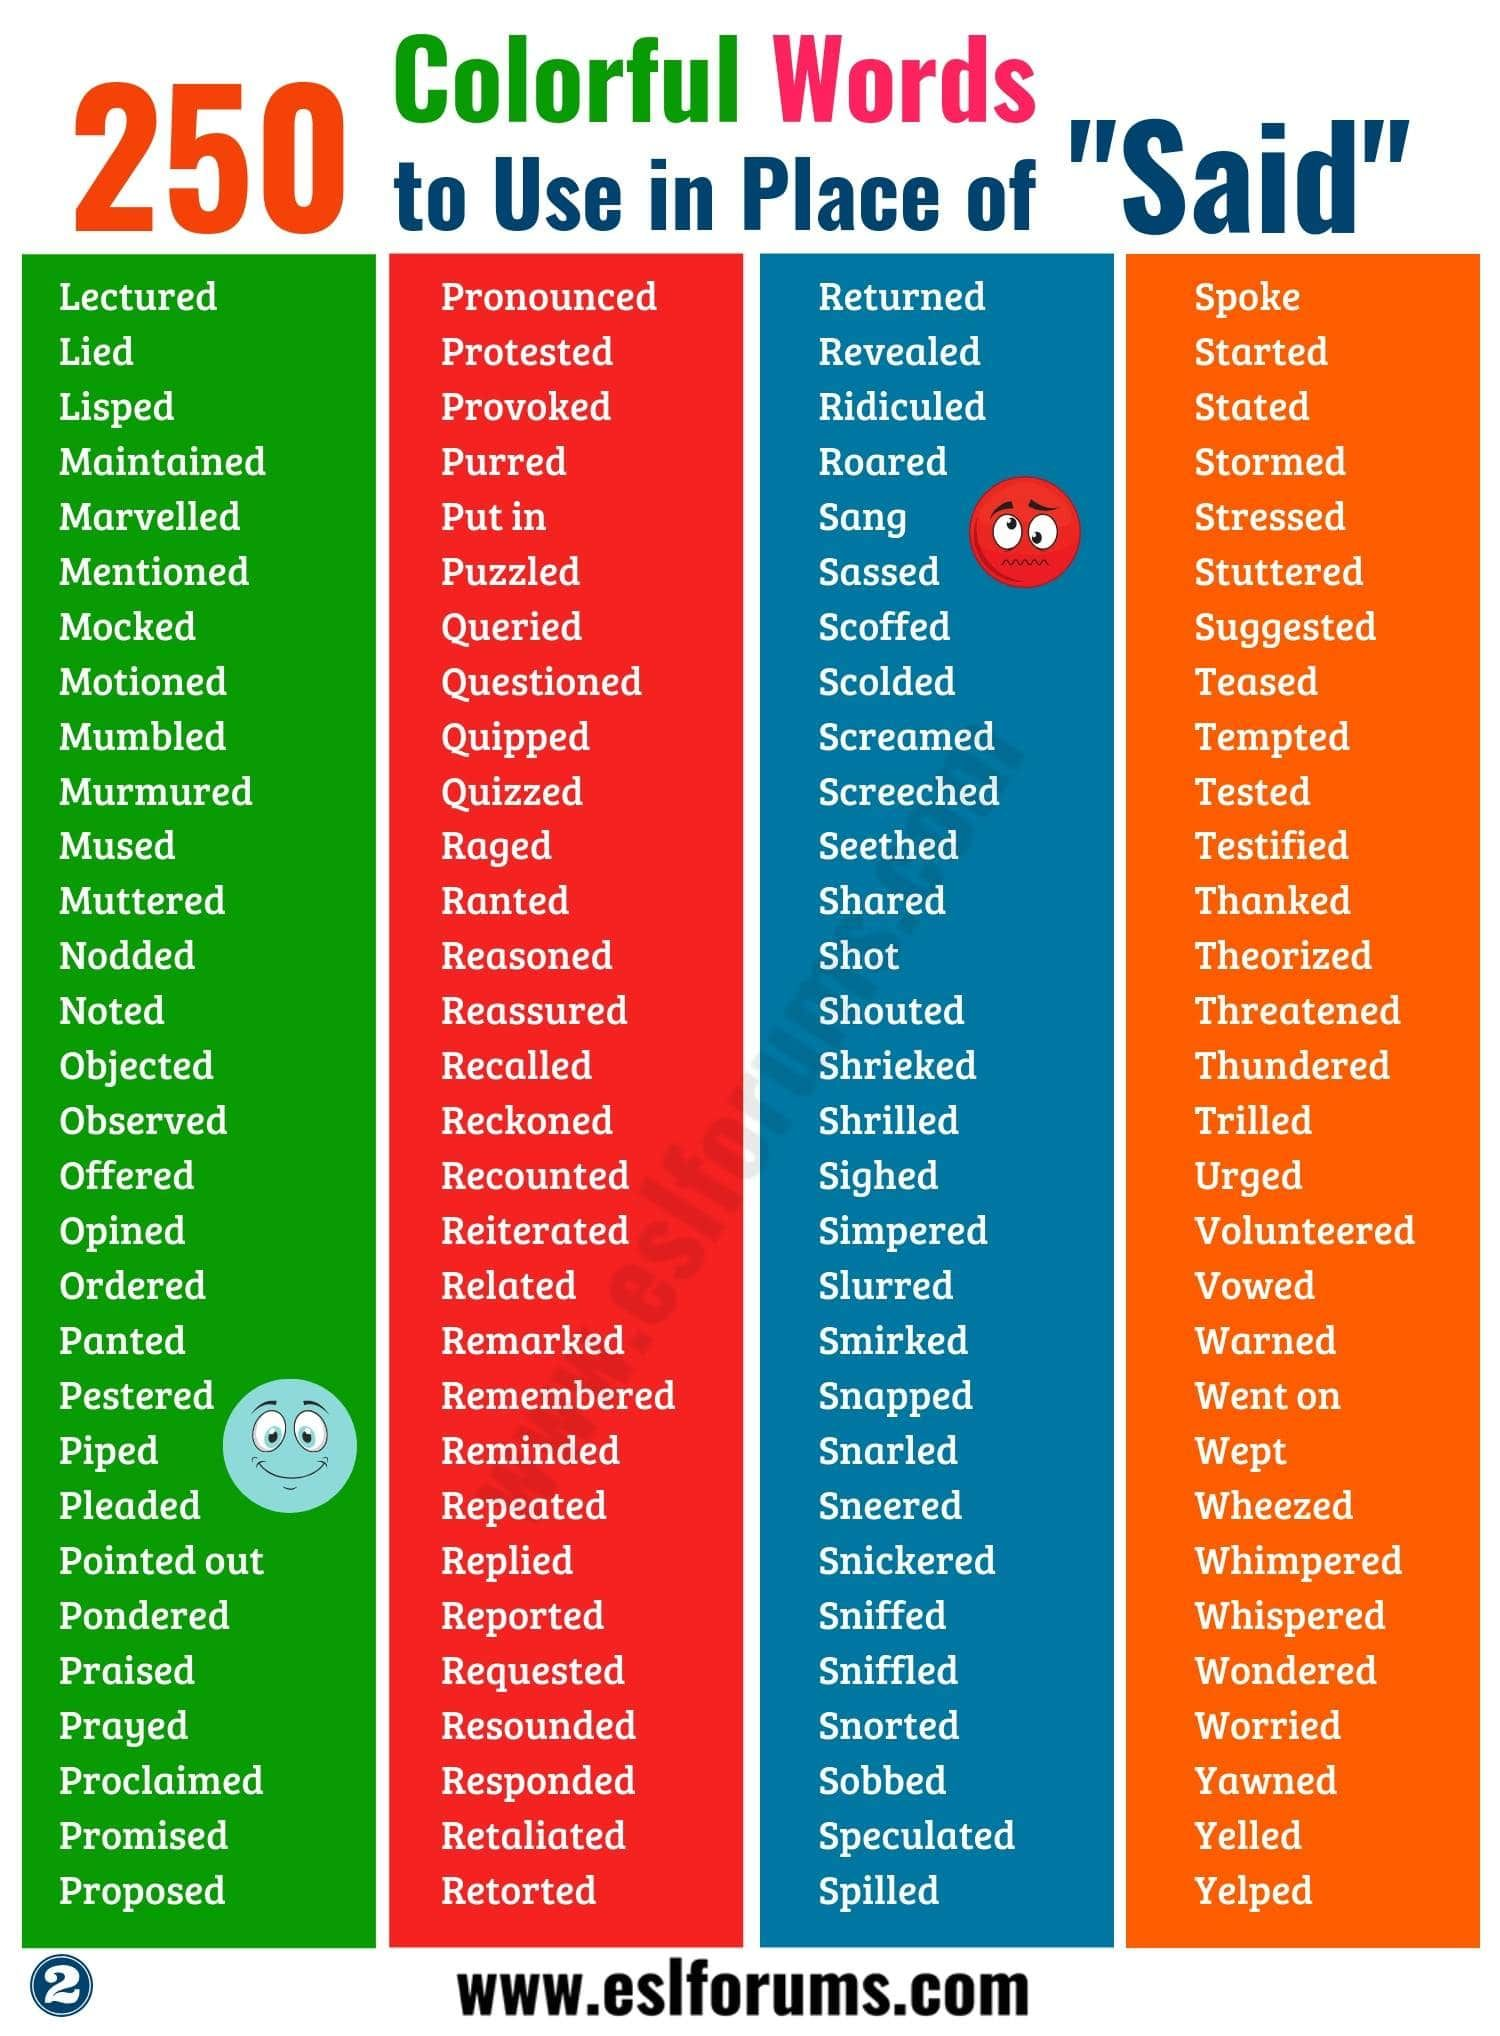 Said Is Dead Here Are 250 Powerful Words To Use Instead